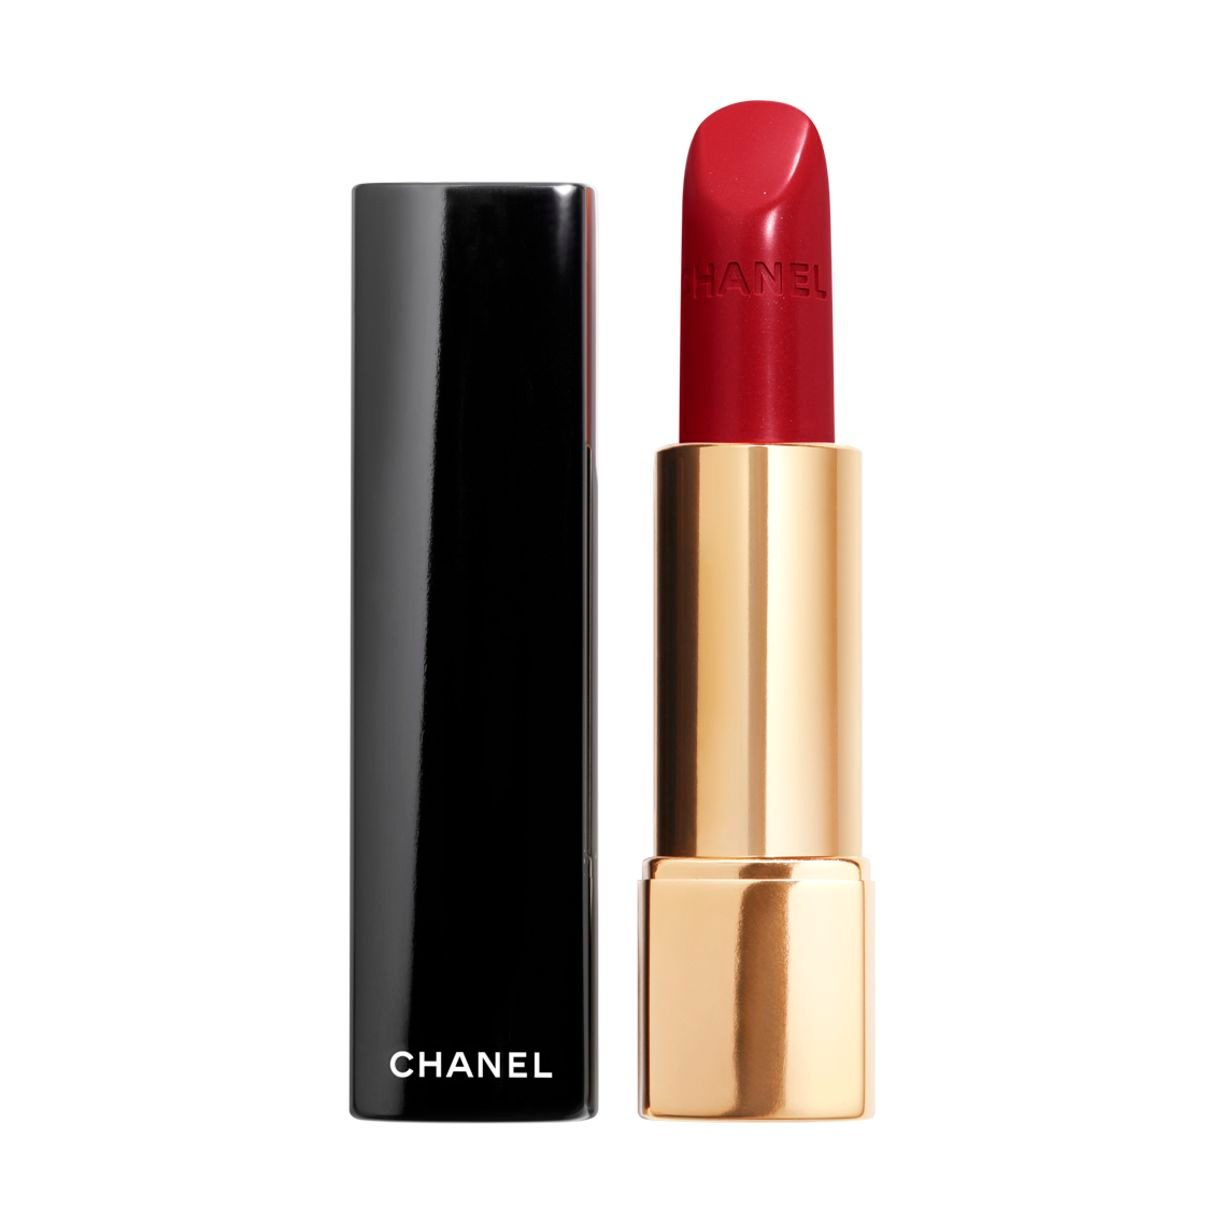 ROUGE ALLURE IL ROSSETTO INTENSO